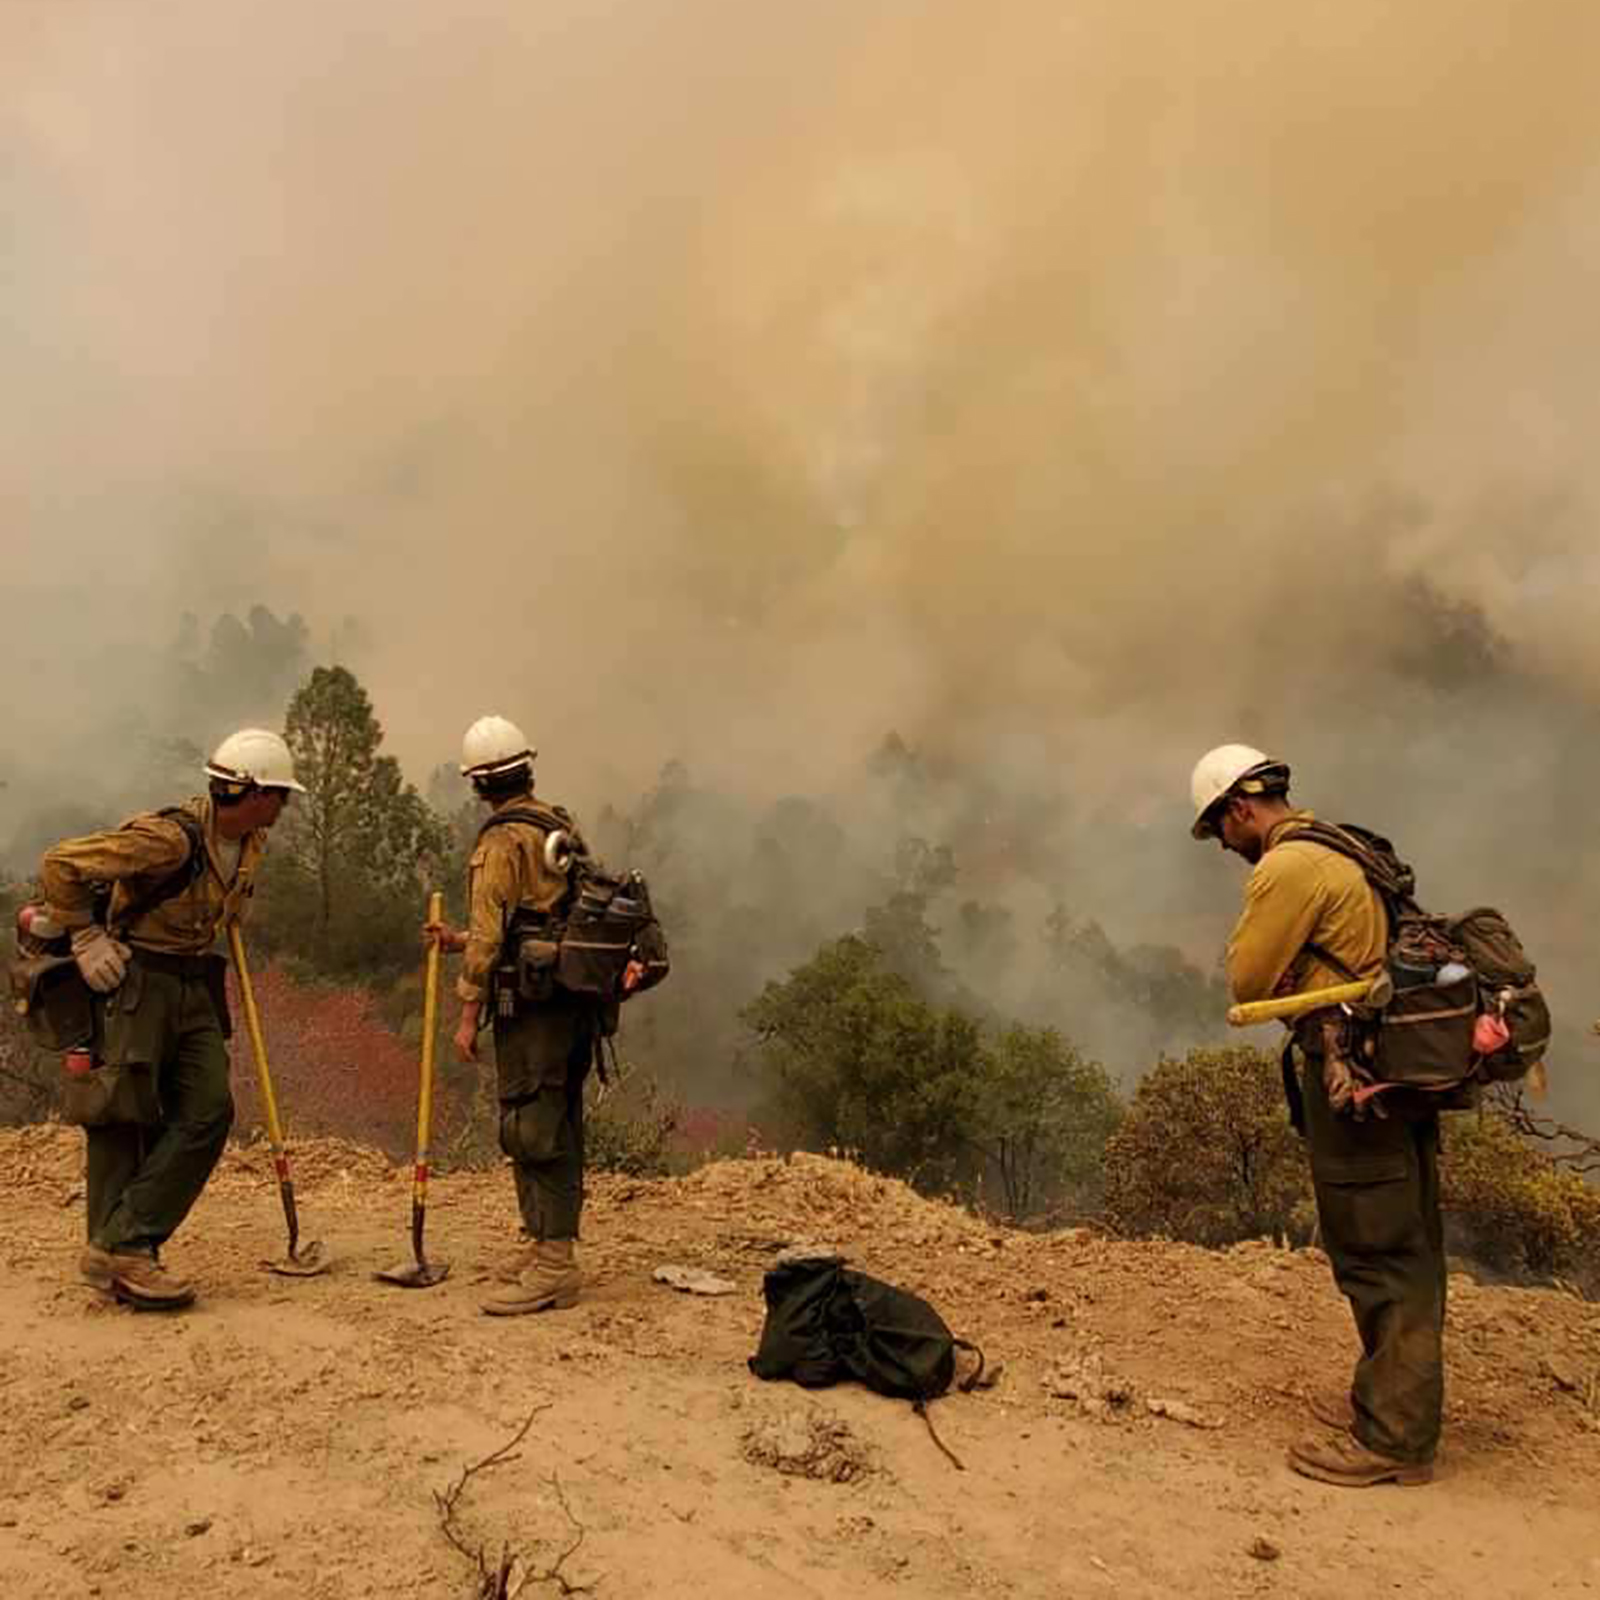 These are the Hotshots, firefighters on the frontlines of deadly California blazes